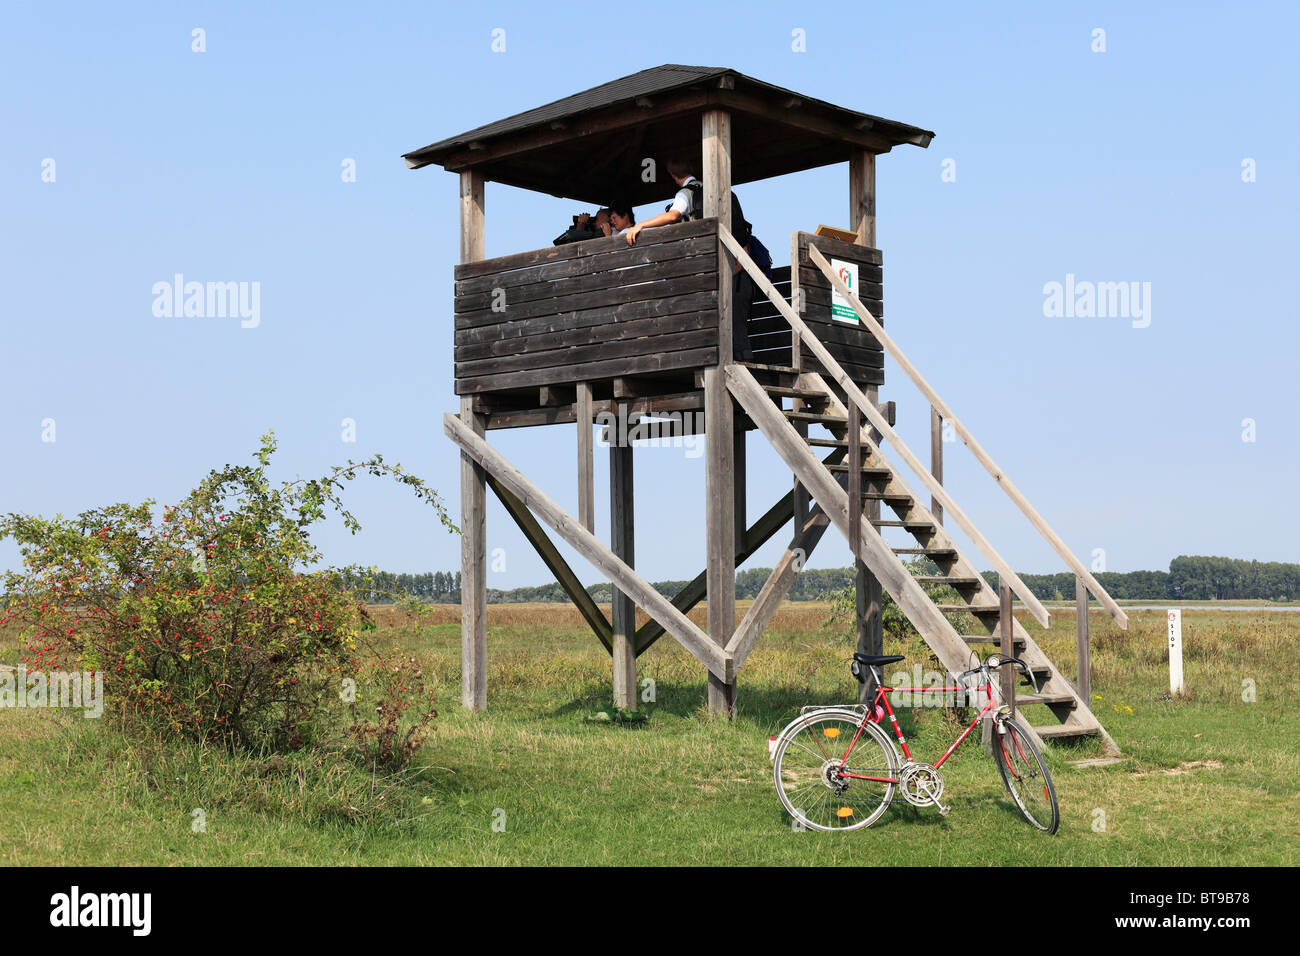 Observation look-out, National Park Neusiedler See-Seewinkel, Burgenland, Austria, Europe - Stock Image